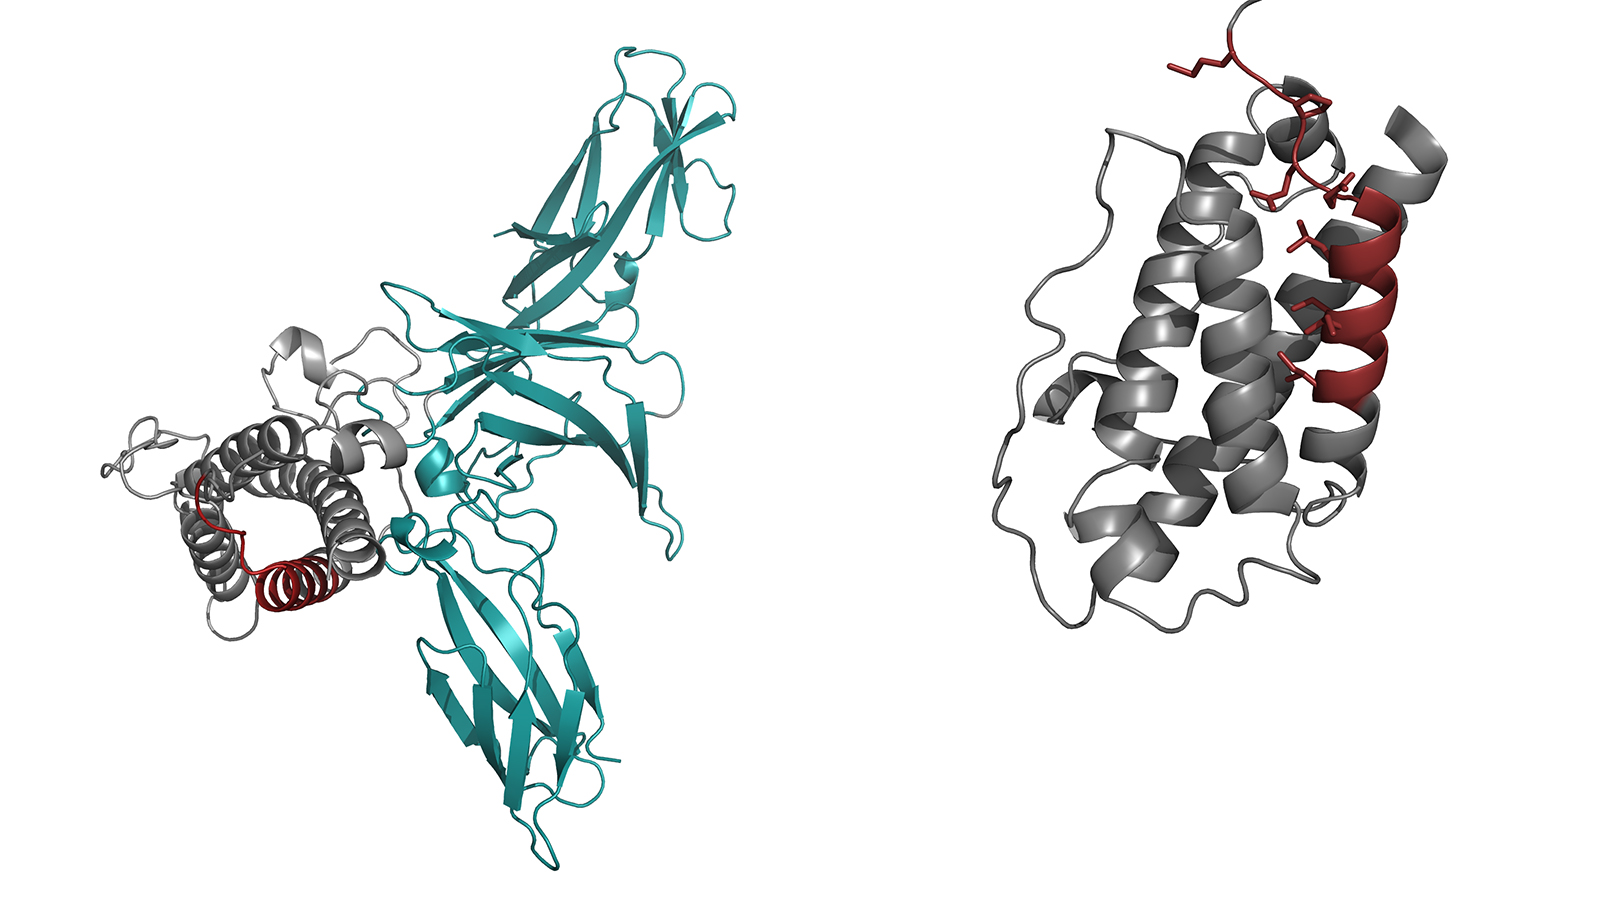 Complete structure of interleukin 23 and the structure of the modified IL23-alpha component.